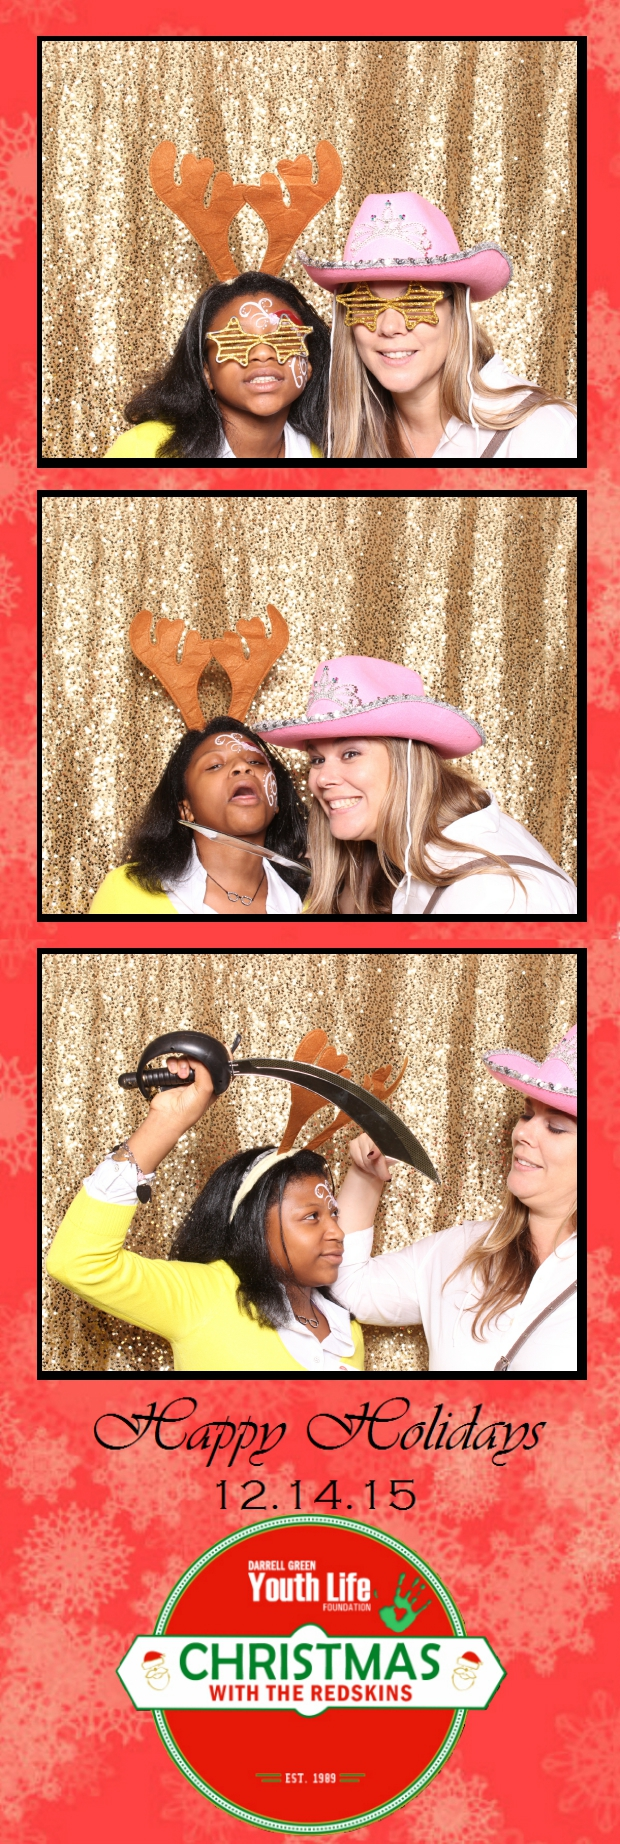 Guest House Events Photo Booth DGYLF Strips (51).jpg